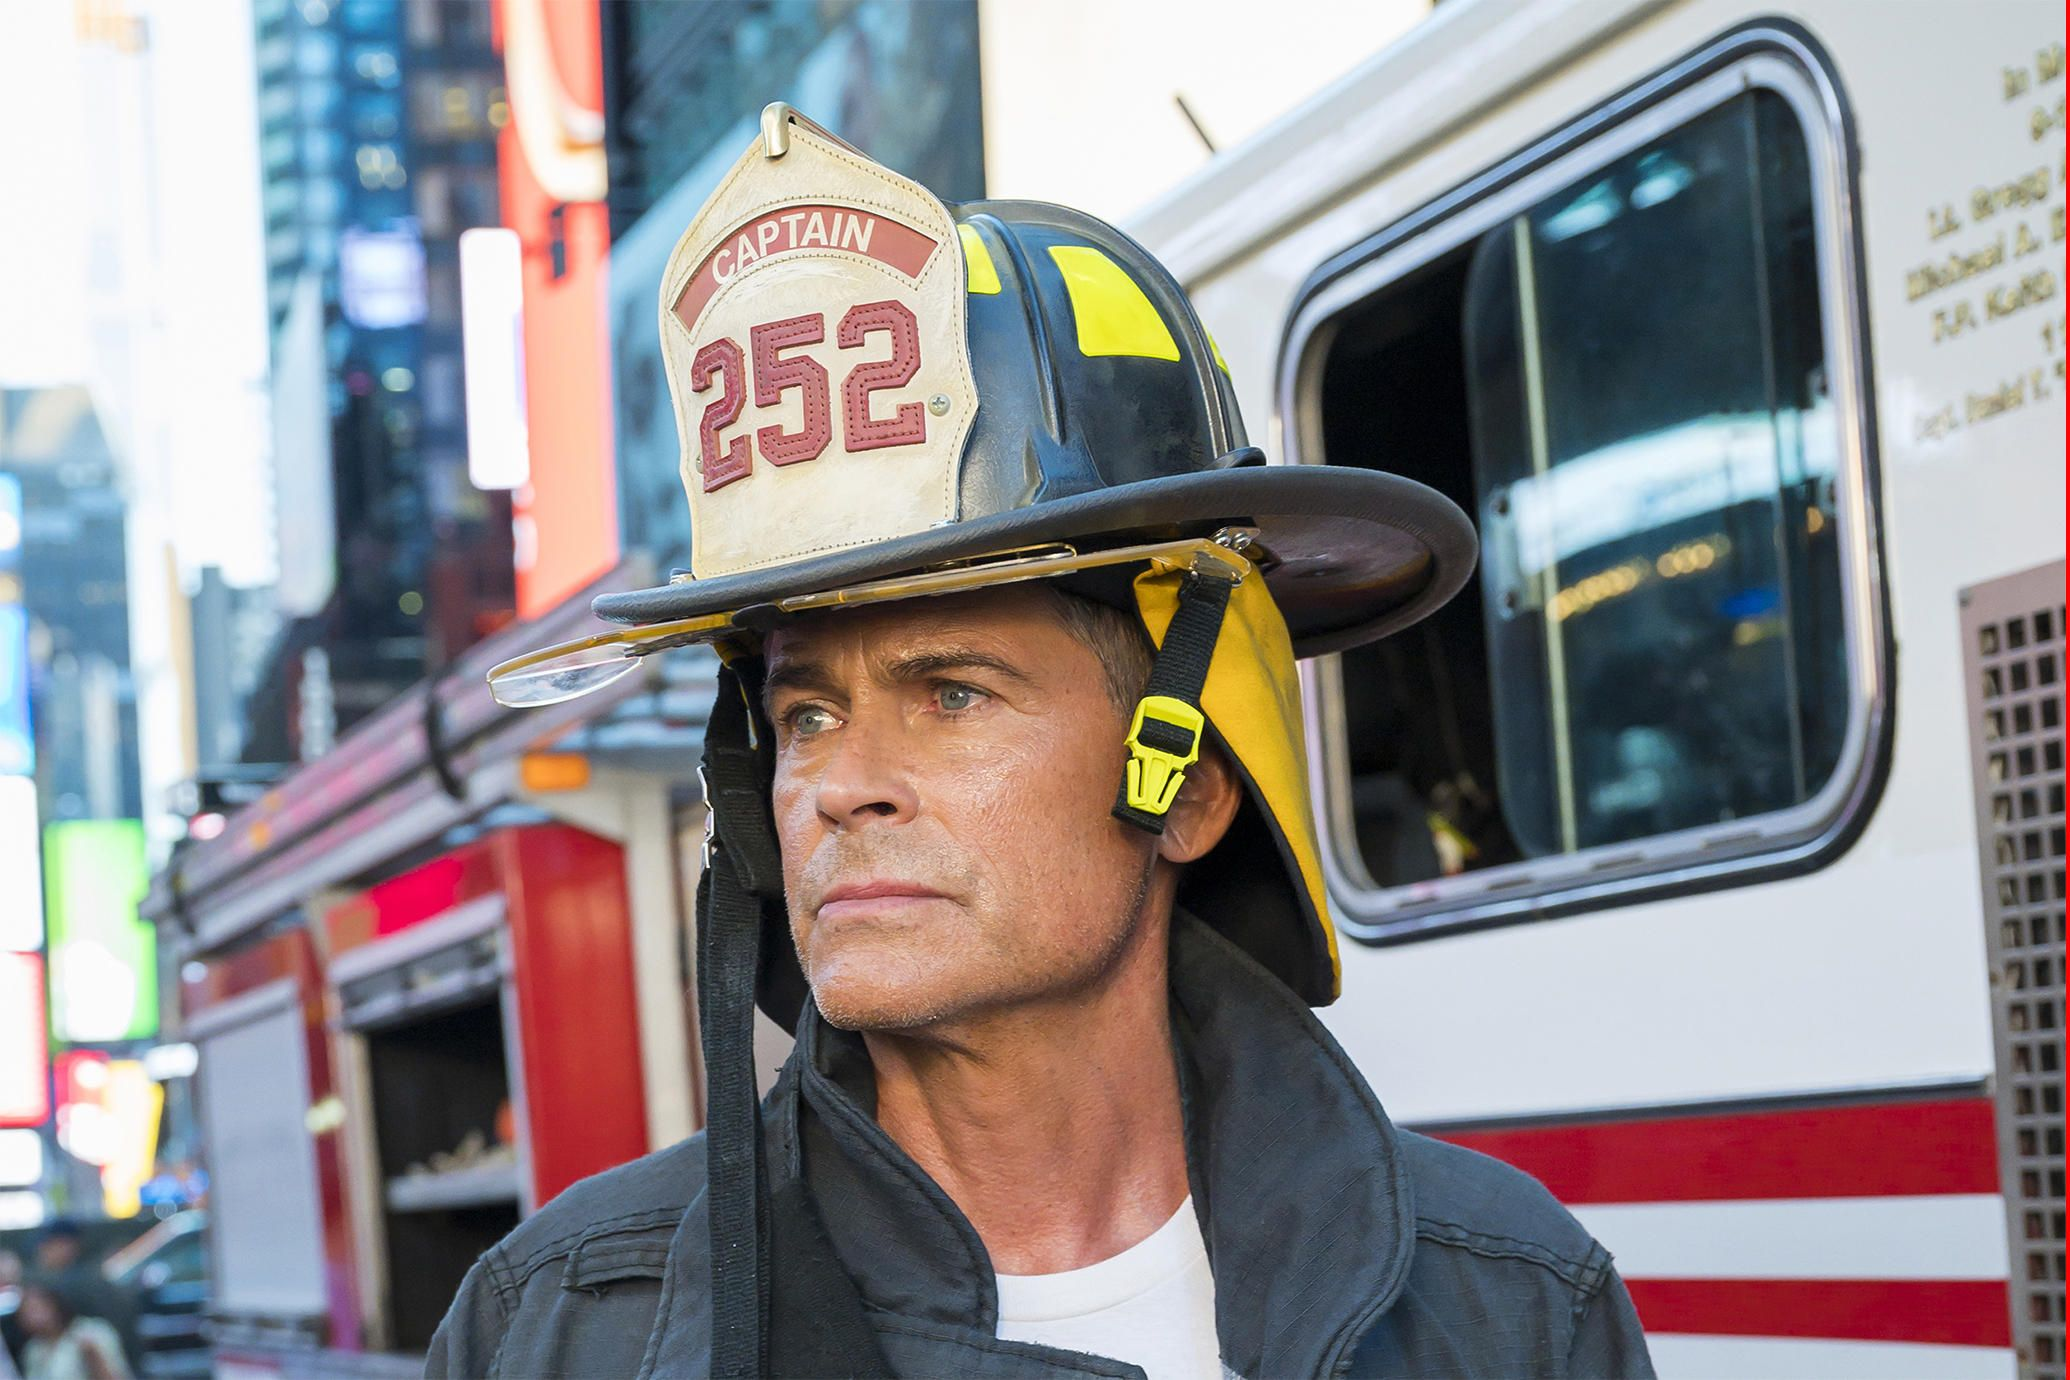 Rob Lowe and Liv Tyler Are a Steaming Hot Pair in This 9-1-1: Lone Star Teaser | TV Guide